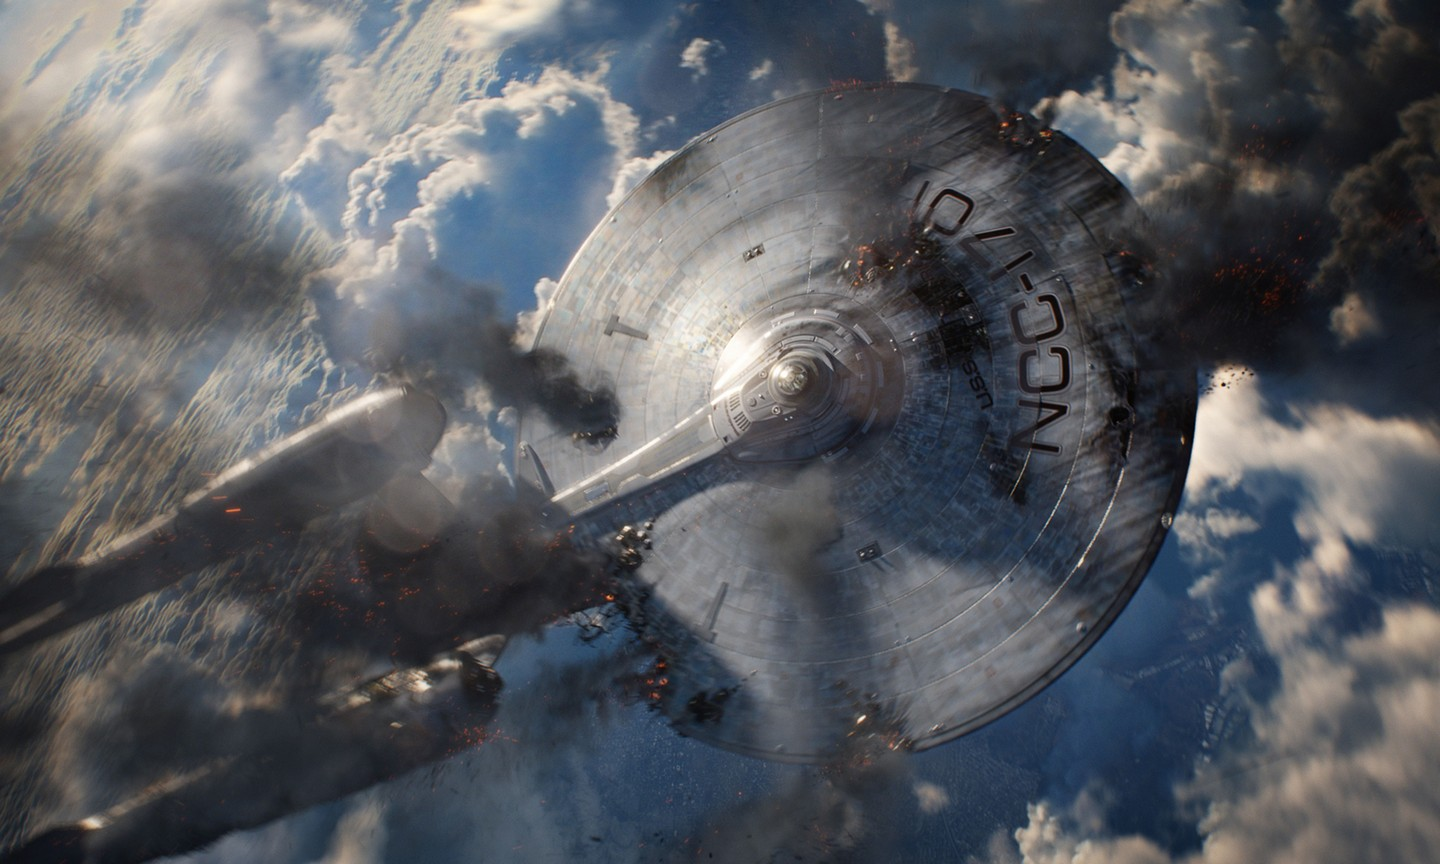 Enterprise in Star Trek Into Darkness